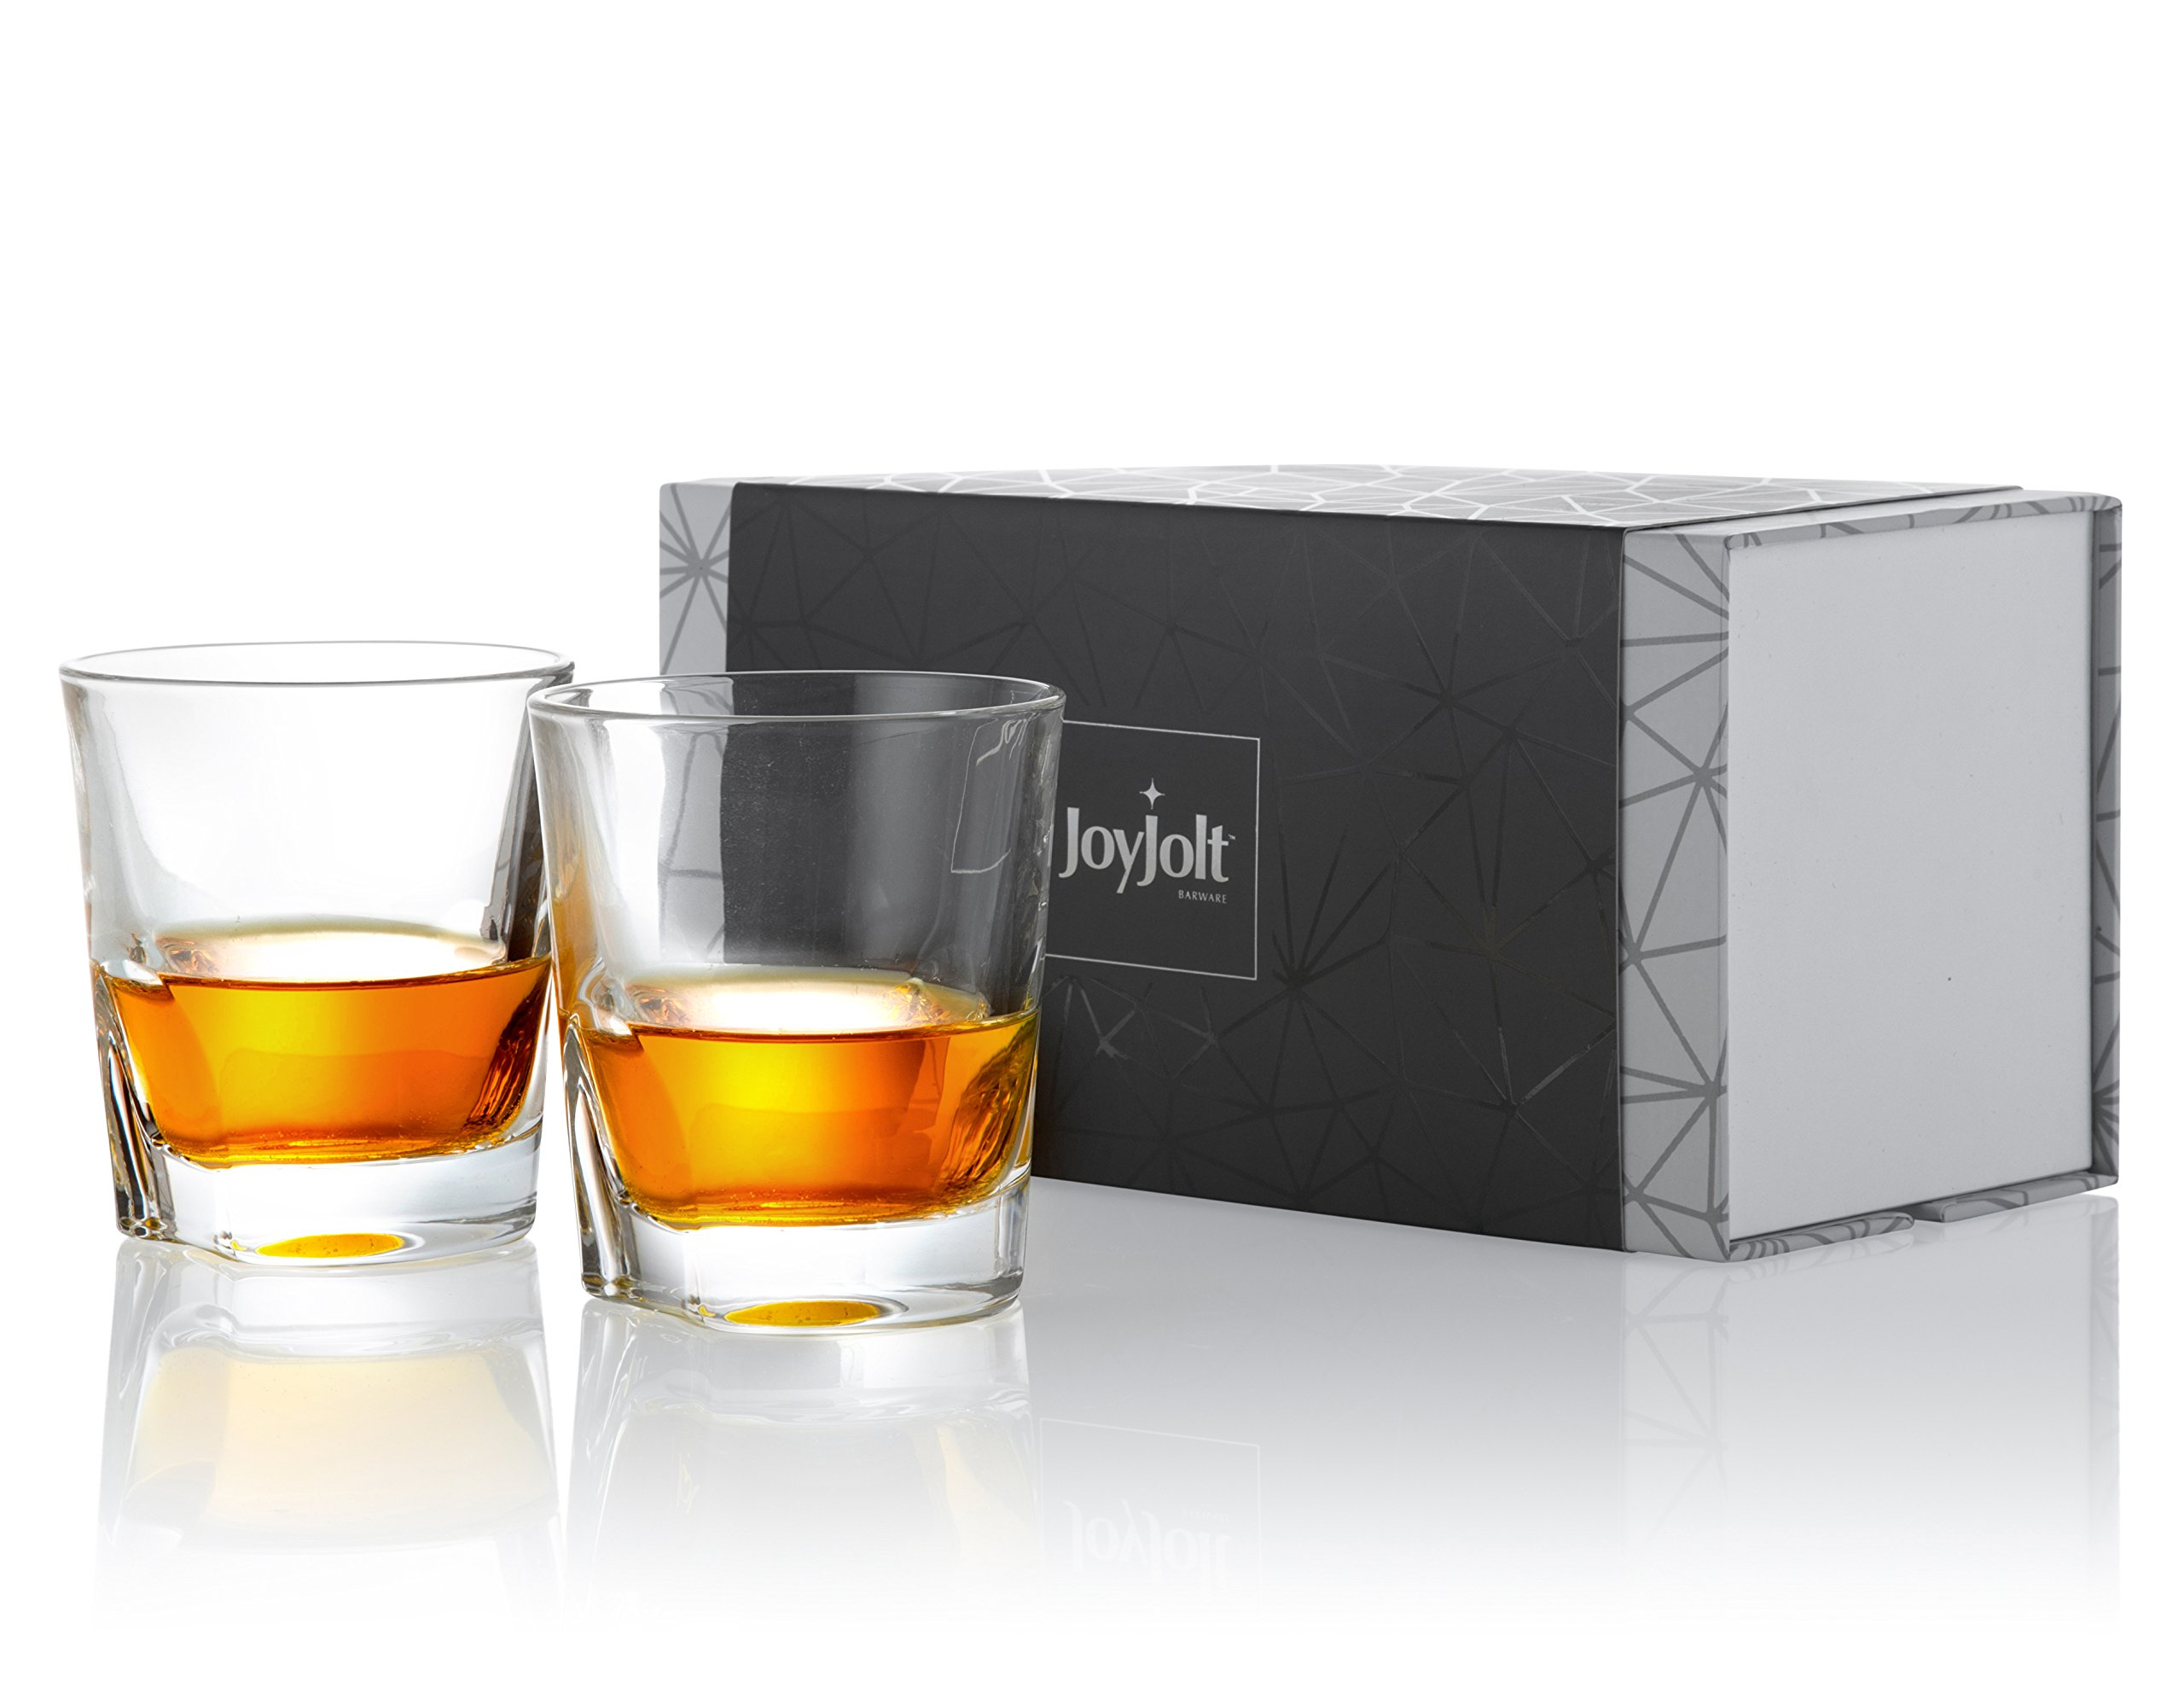 Ultra Clear Whiskey Glass for Bourbon and Liquor Set of 2 Glassware Old Fashioned Whiskey Glasses 10-Ounce JoyJolt Afina Scotch Glasses